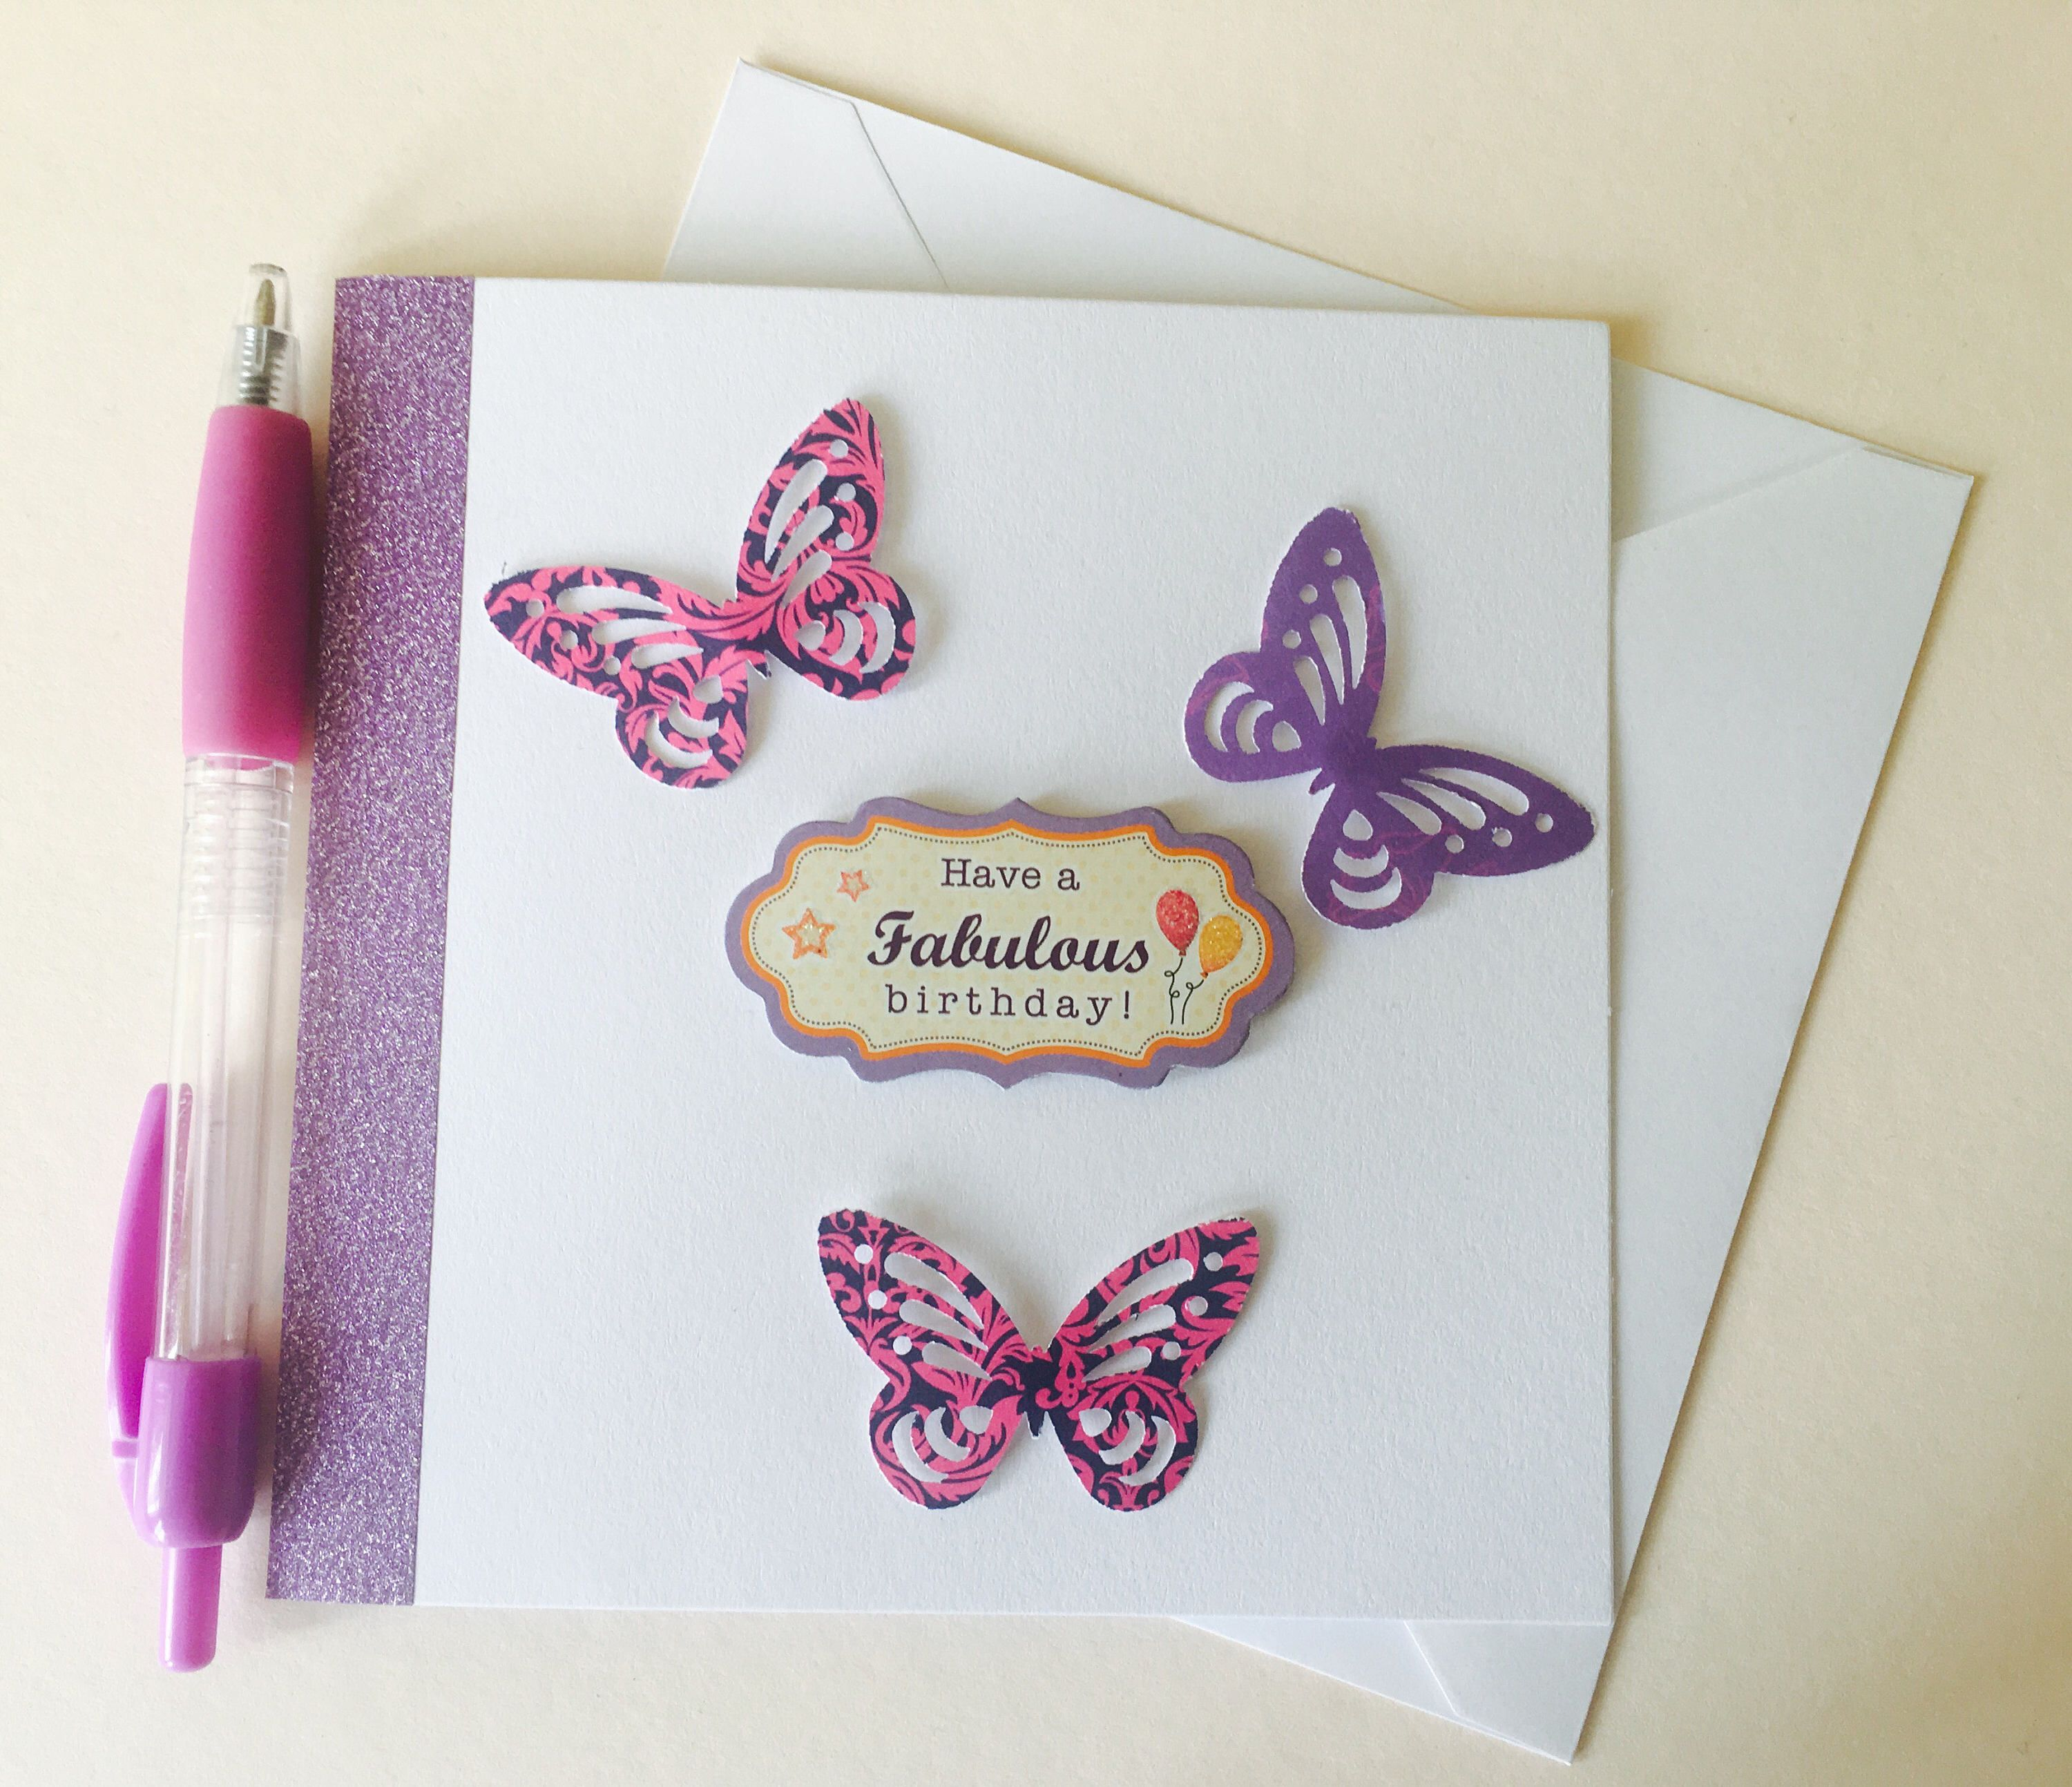 Fabulous birthday card butterfly birthday card handmade cards fabulous birthday card butterfly birthday card handmade cards for girls by creationsbylindsay17 on etsy kristyandbryce Images